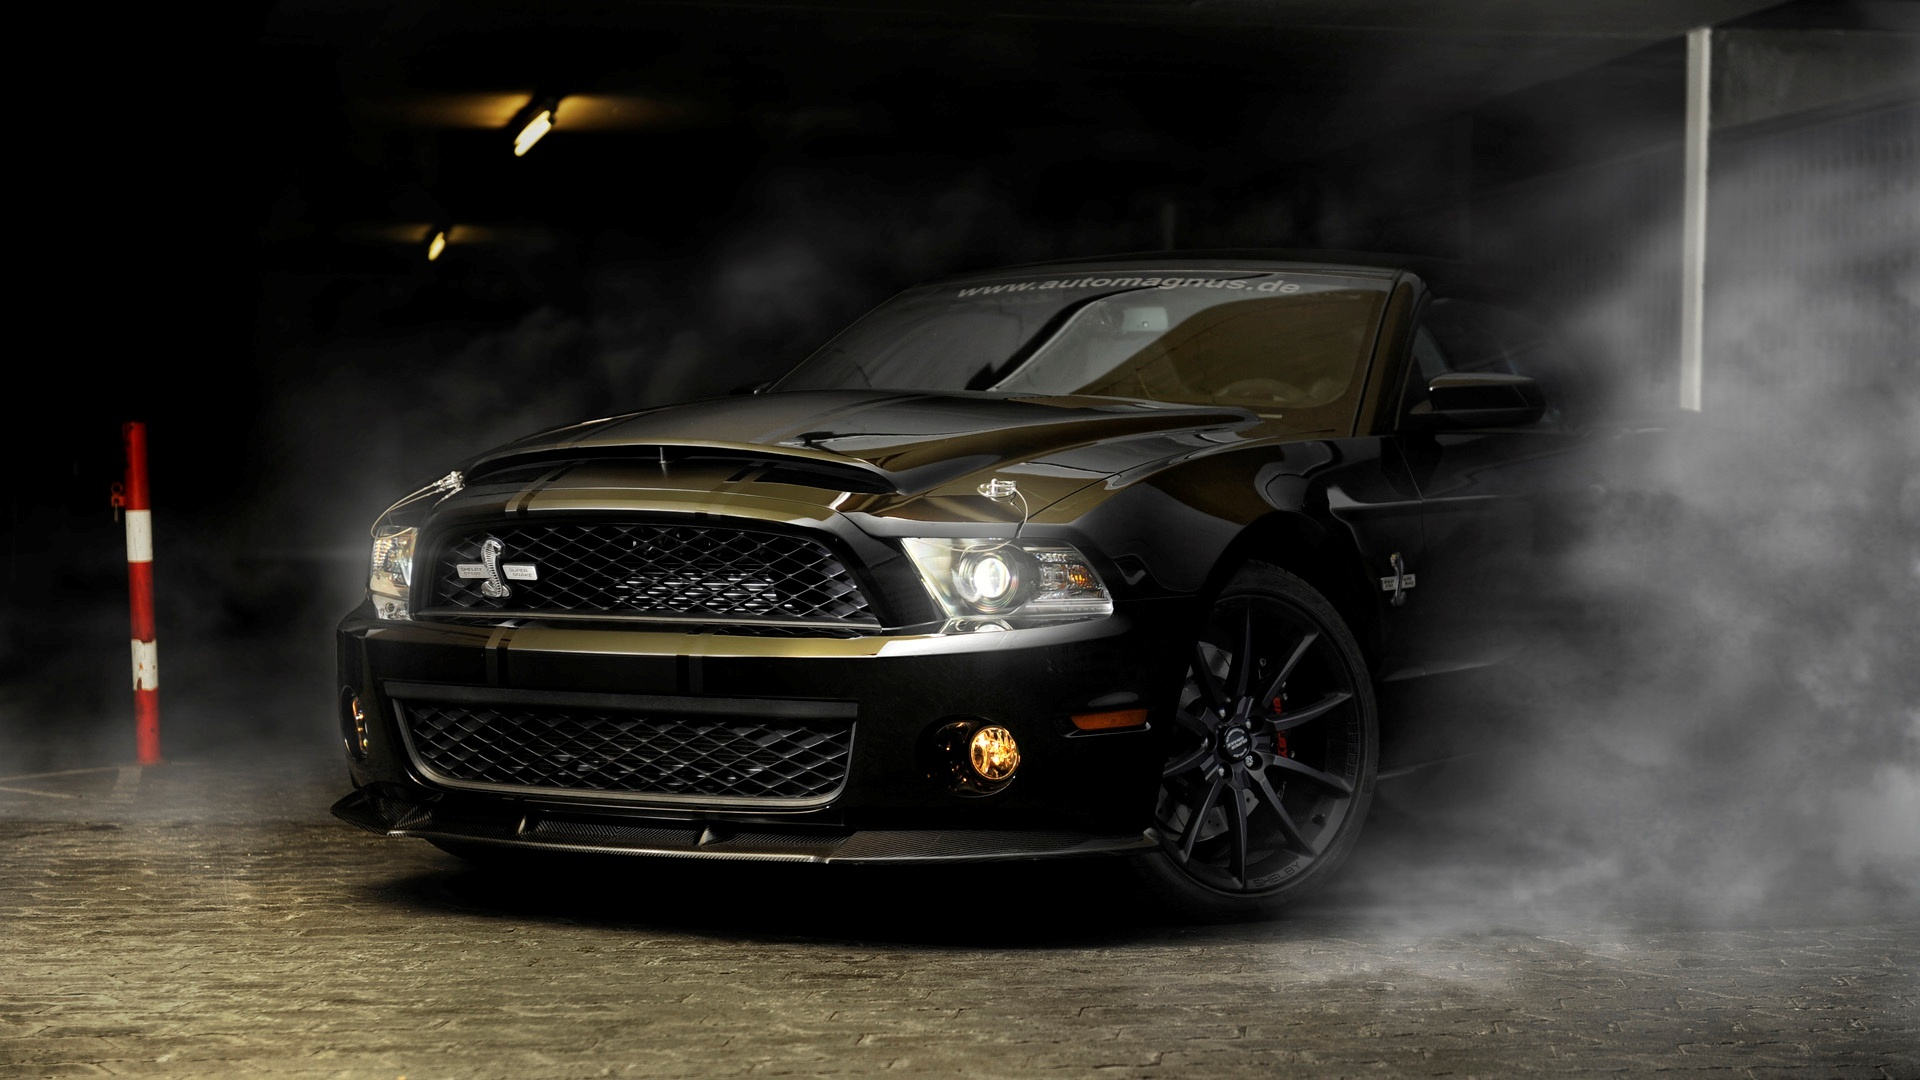 ford mustang shelby wallpaper hd full hd pictures - Mustang 2014 Black Wallpaper